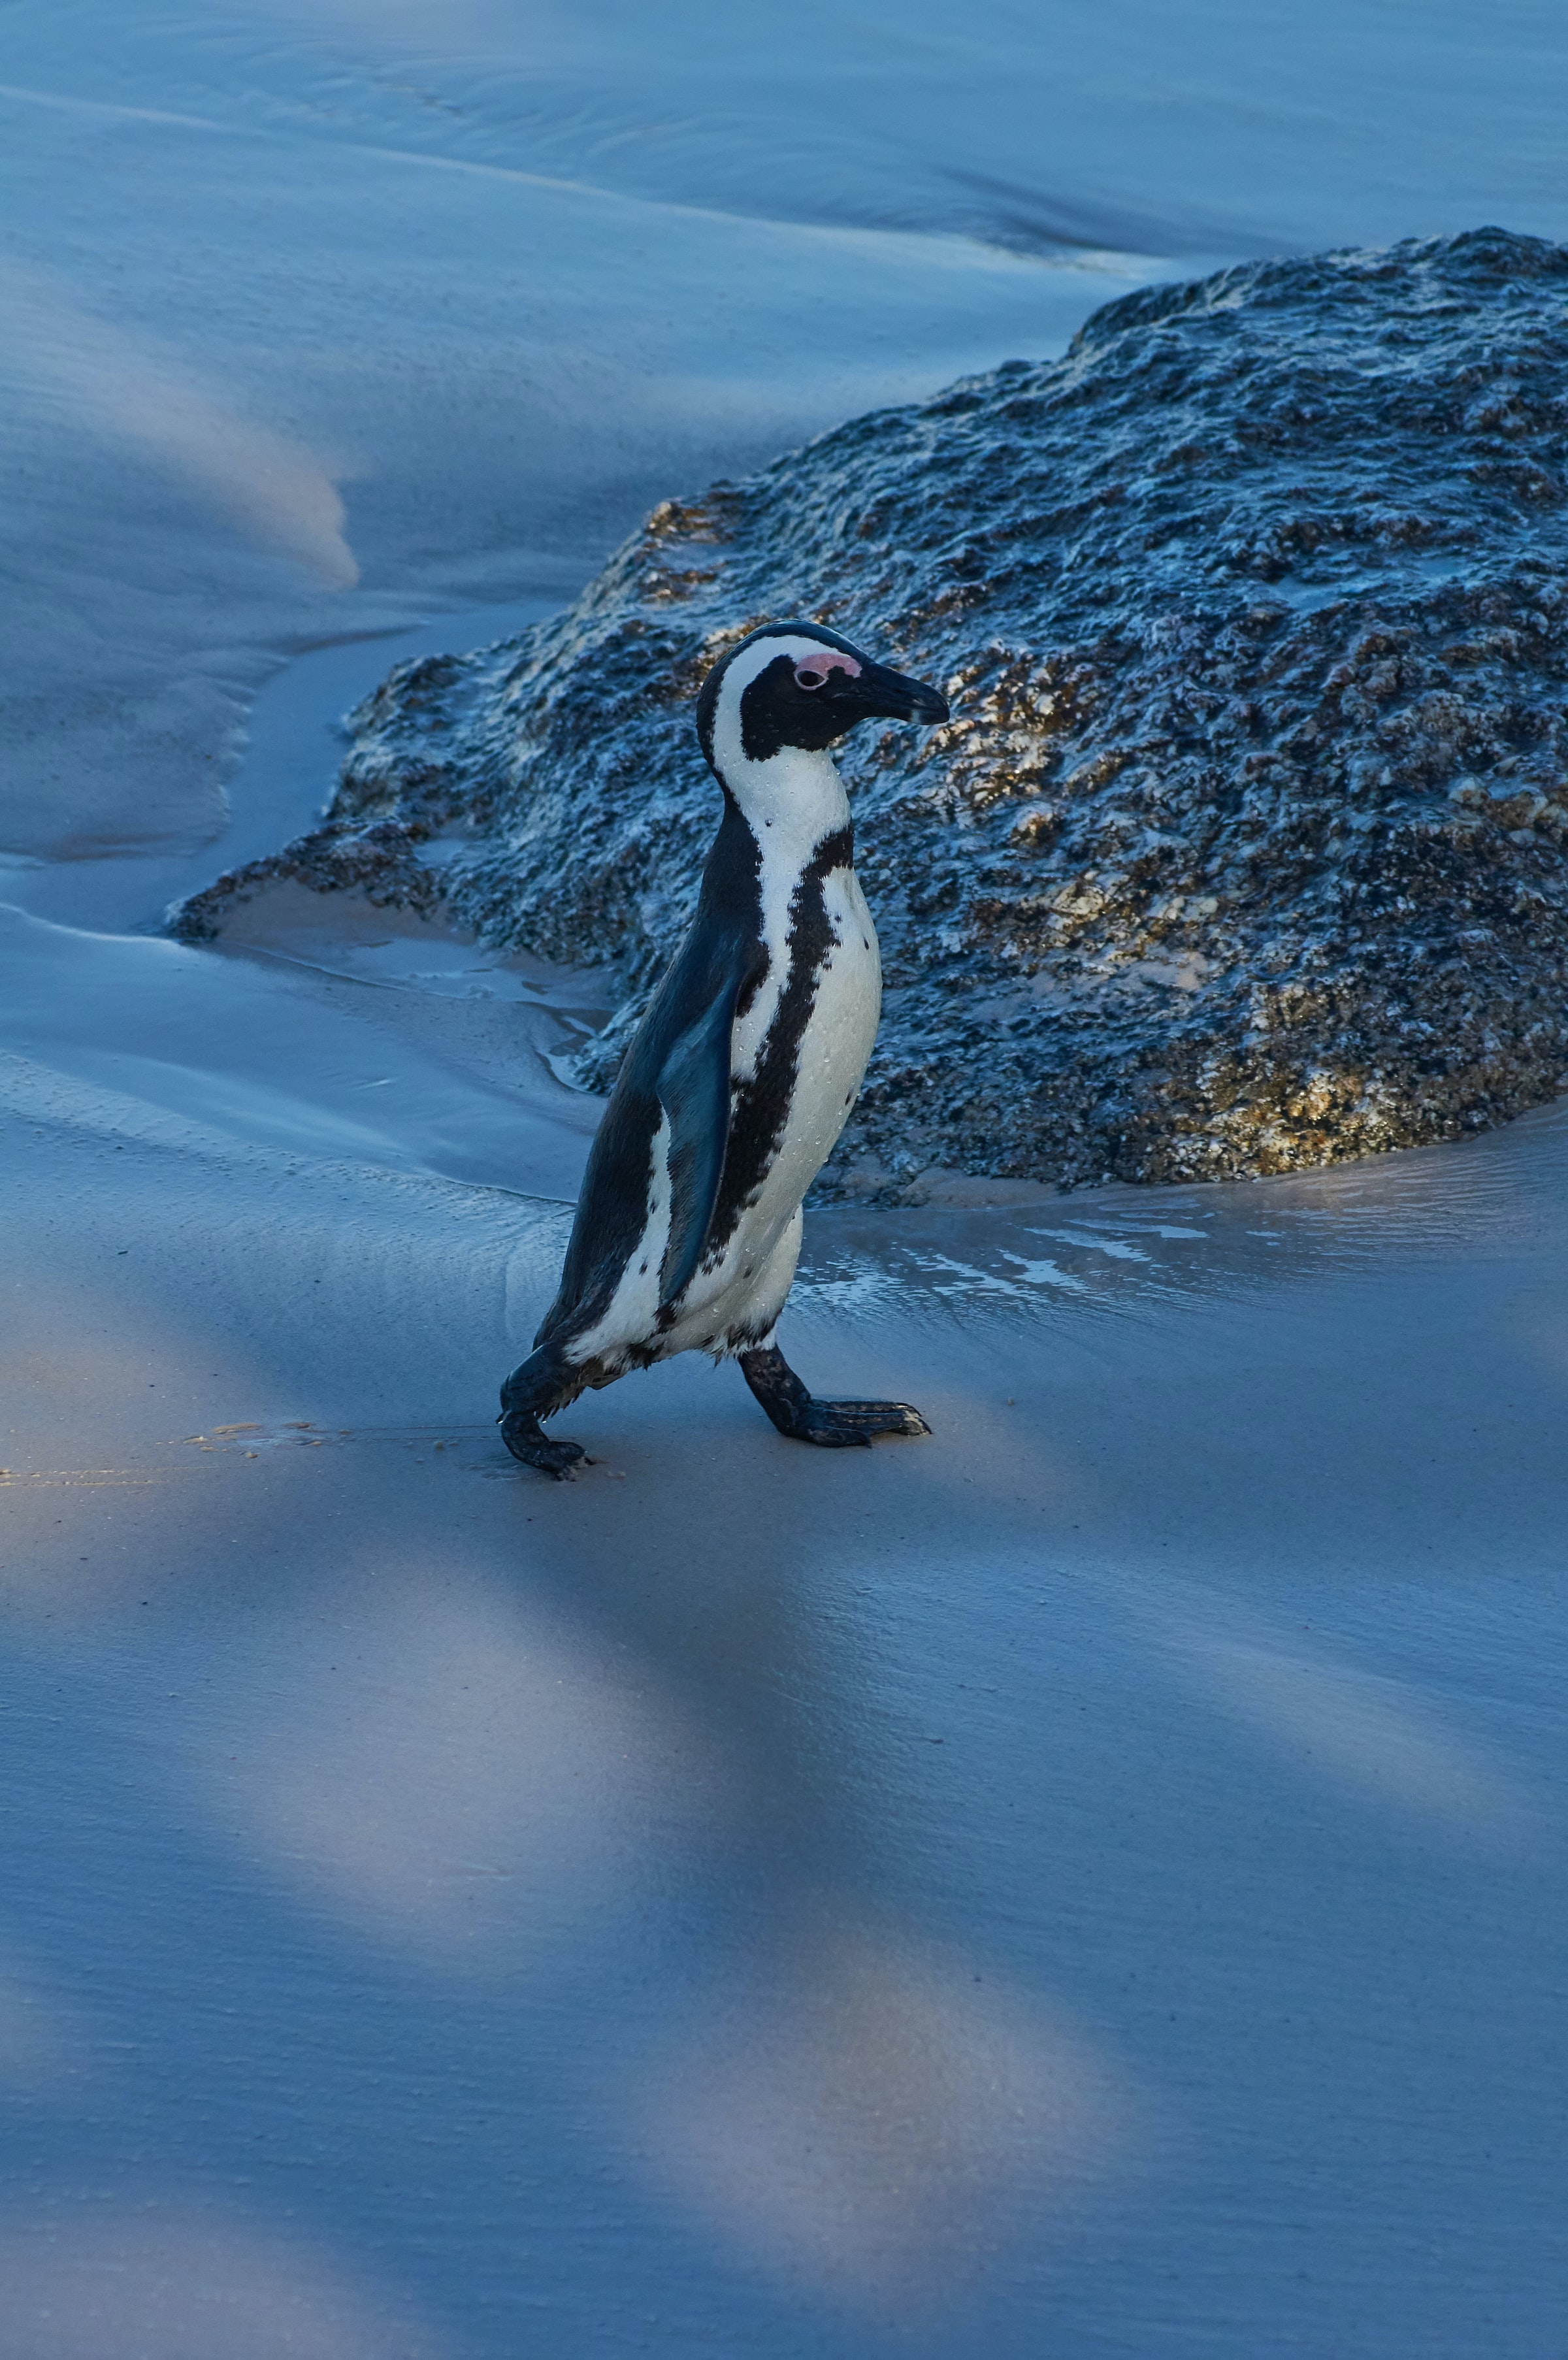 103244 download wallpaper Animals, Penguin, Animal, Funny, Ice, Snow, Snow Covered, Snowbound screensavers and pictures for free